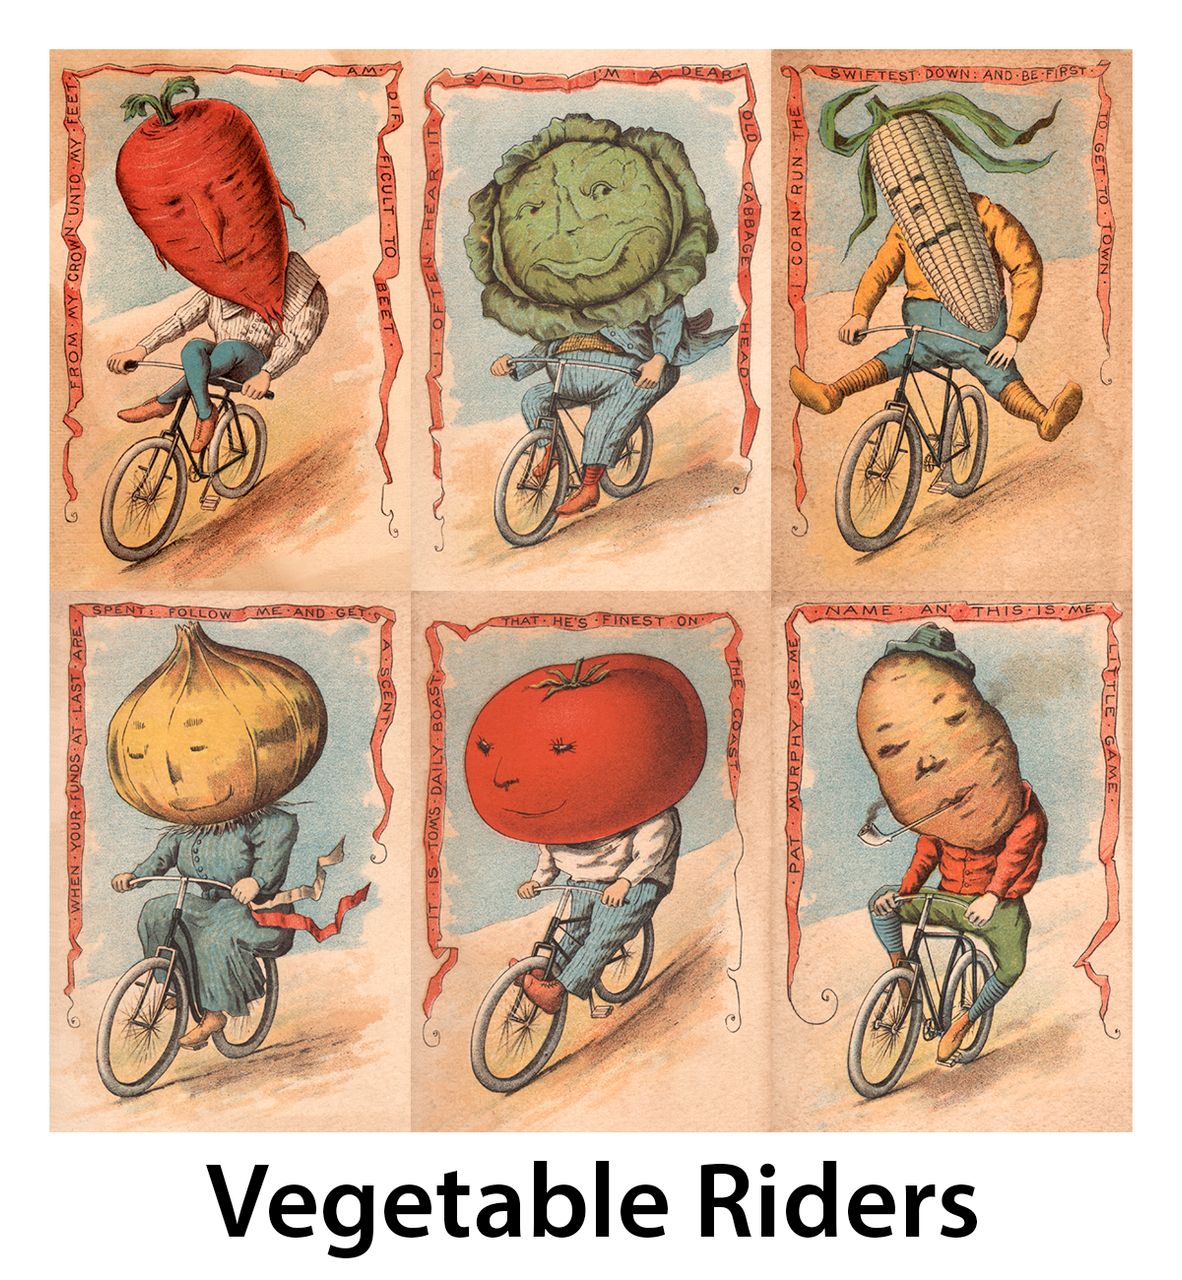 Vegetable Riders Vintage Bicycle Posters - Set of 6